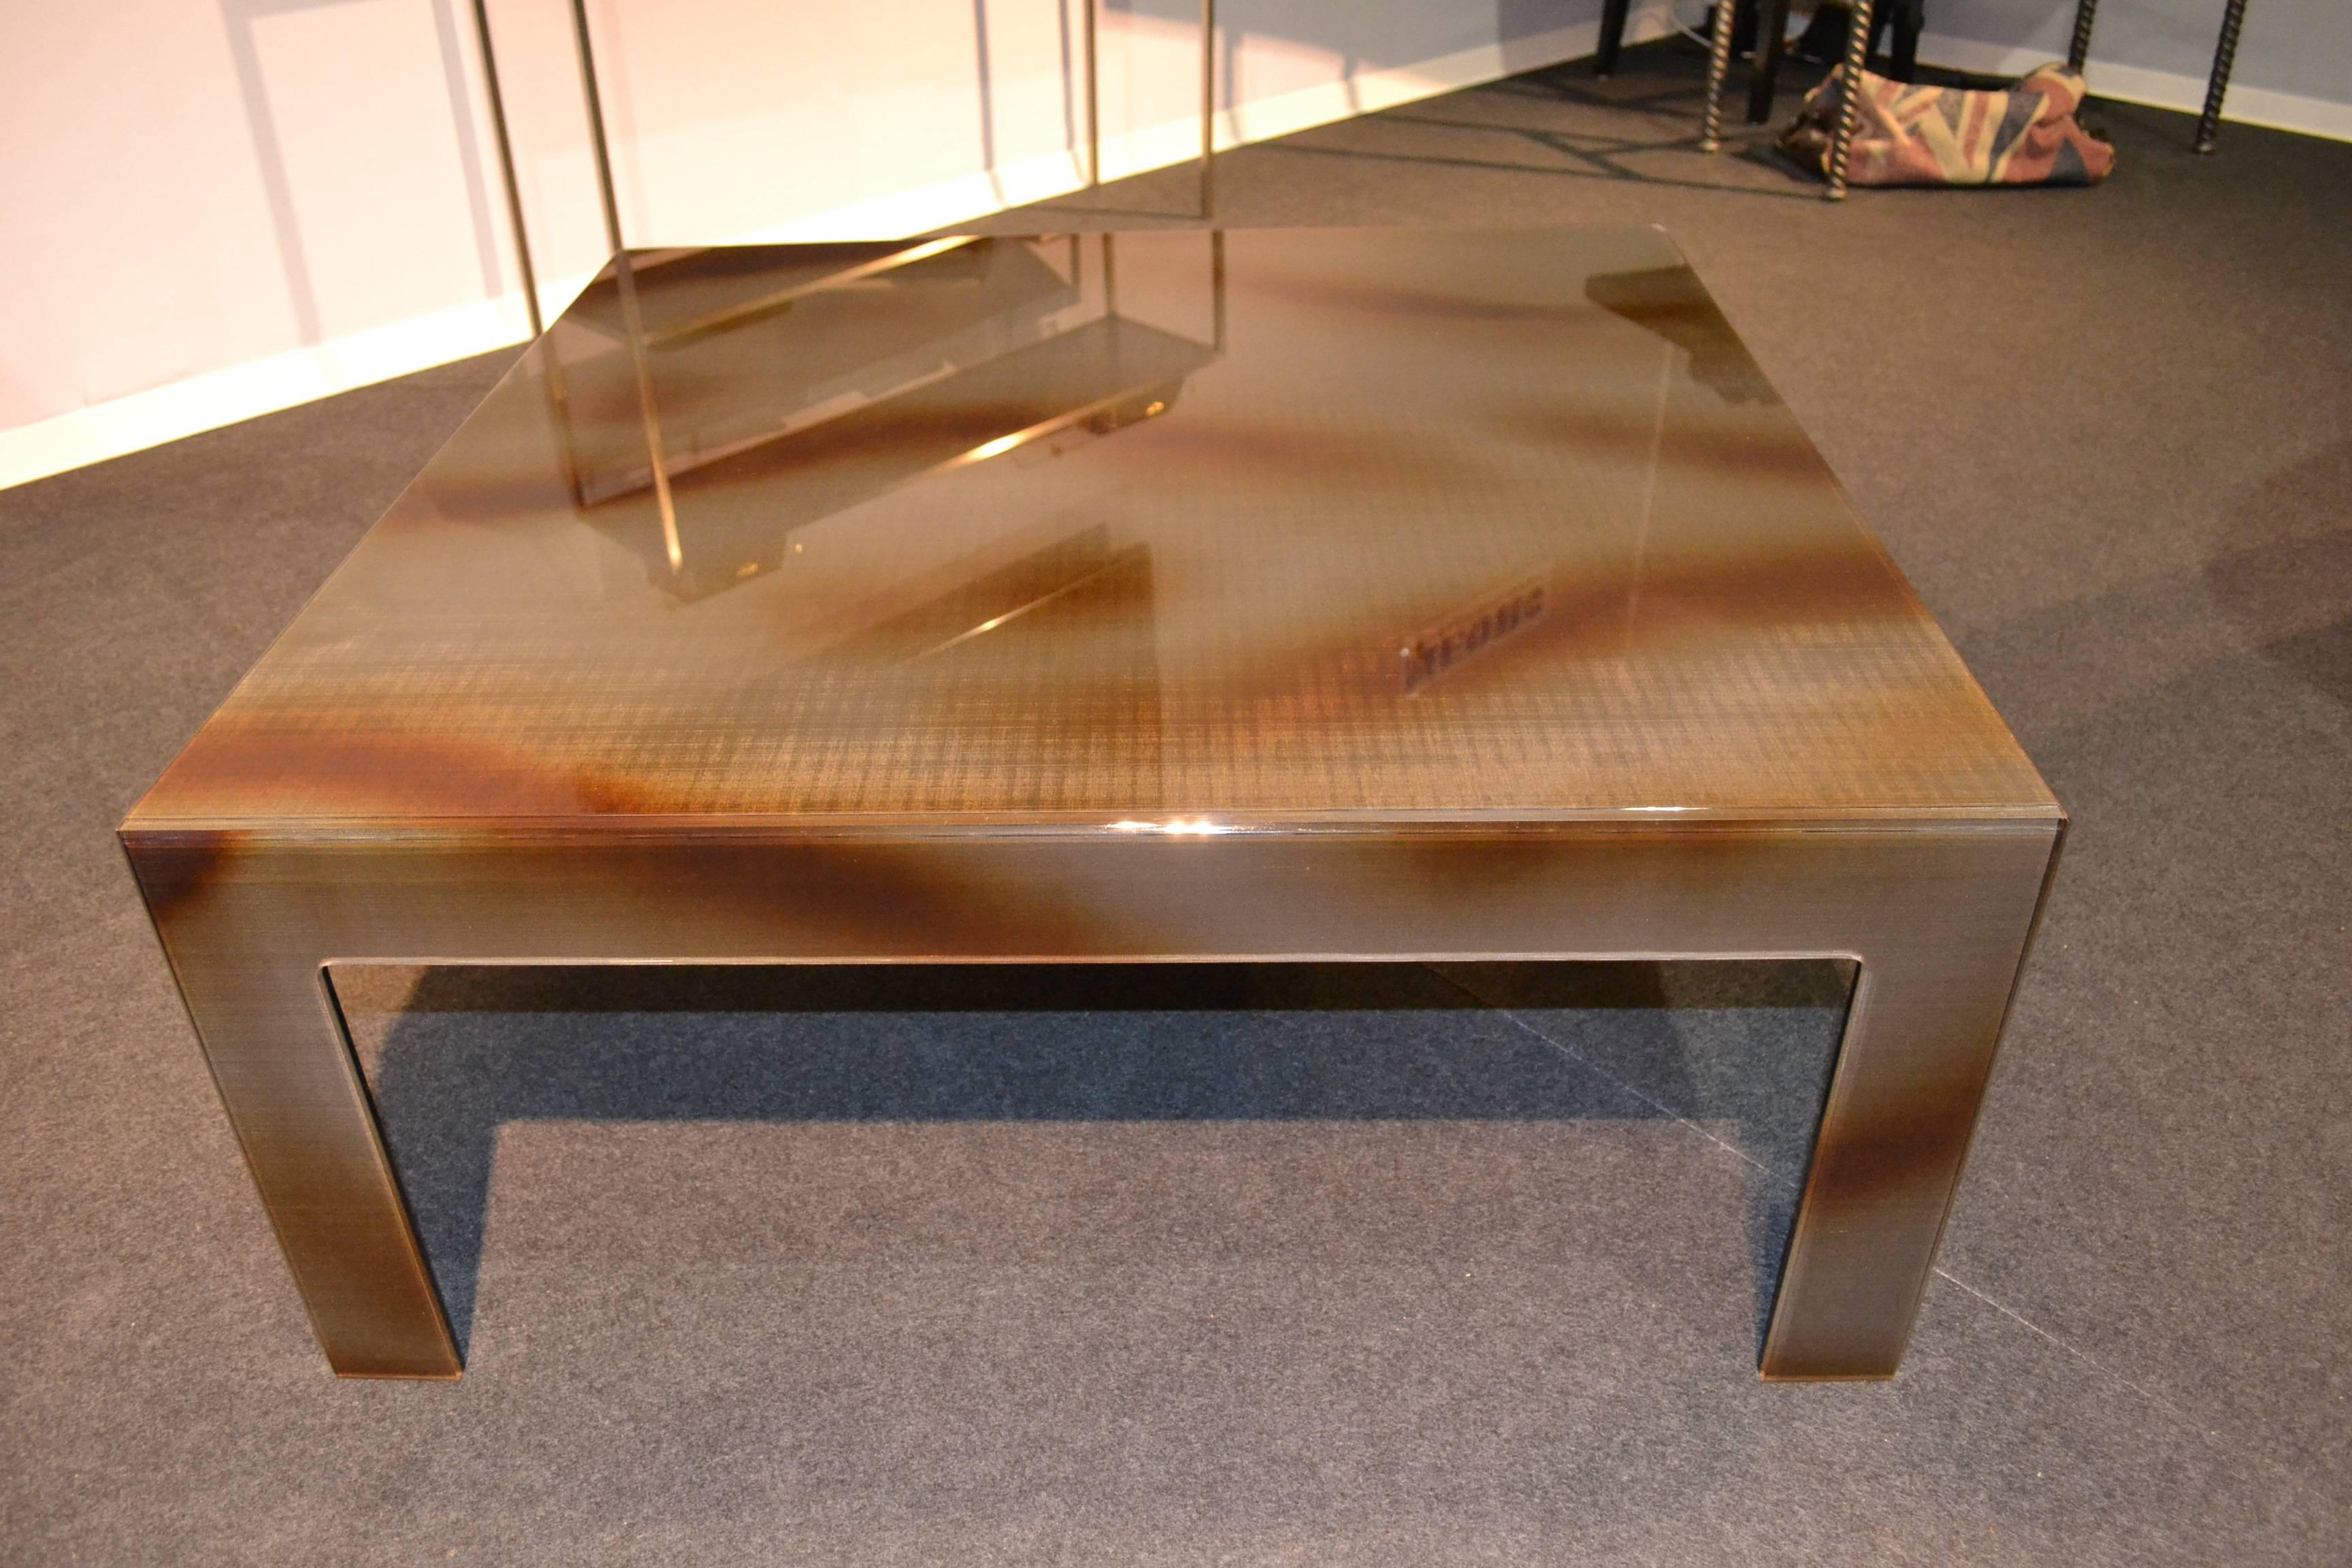 Swiss Modern Plexiglass Coffee Table With Flamed Black Metal Mesh Inlay For  Sale